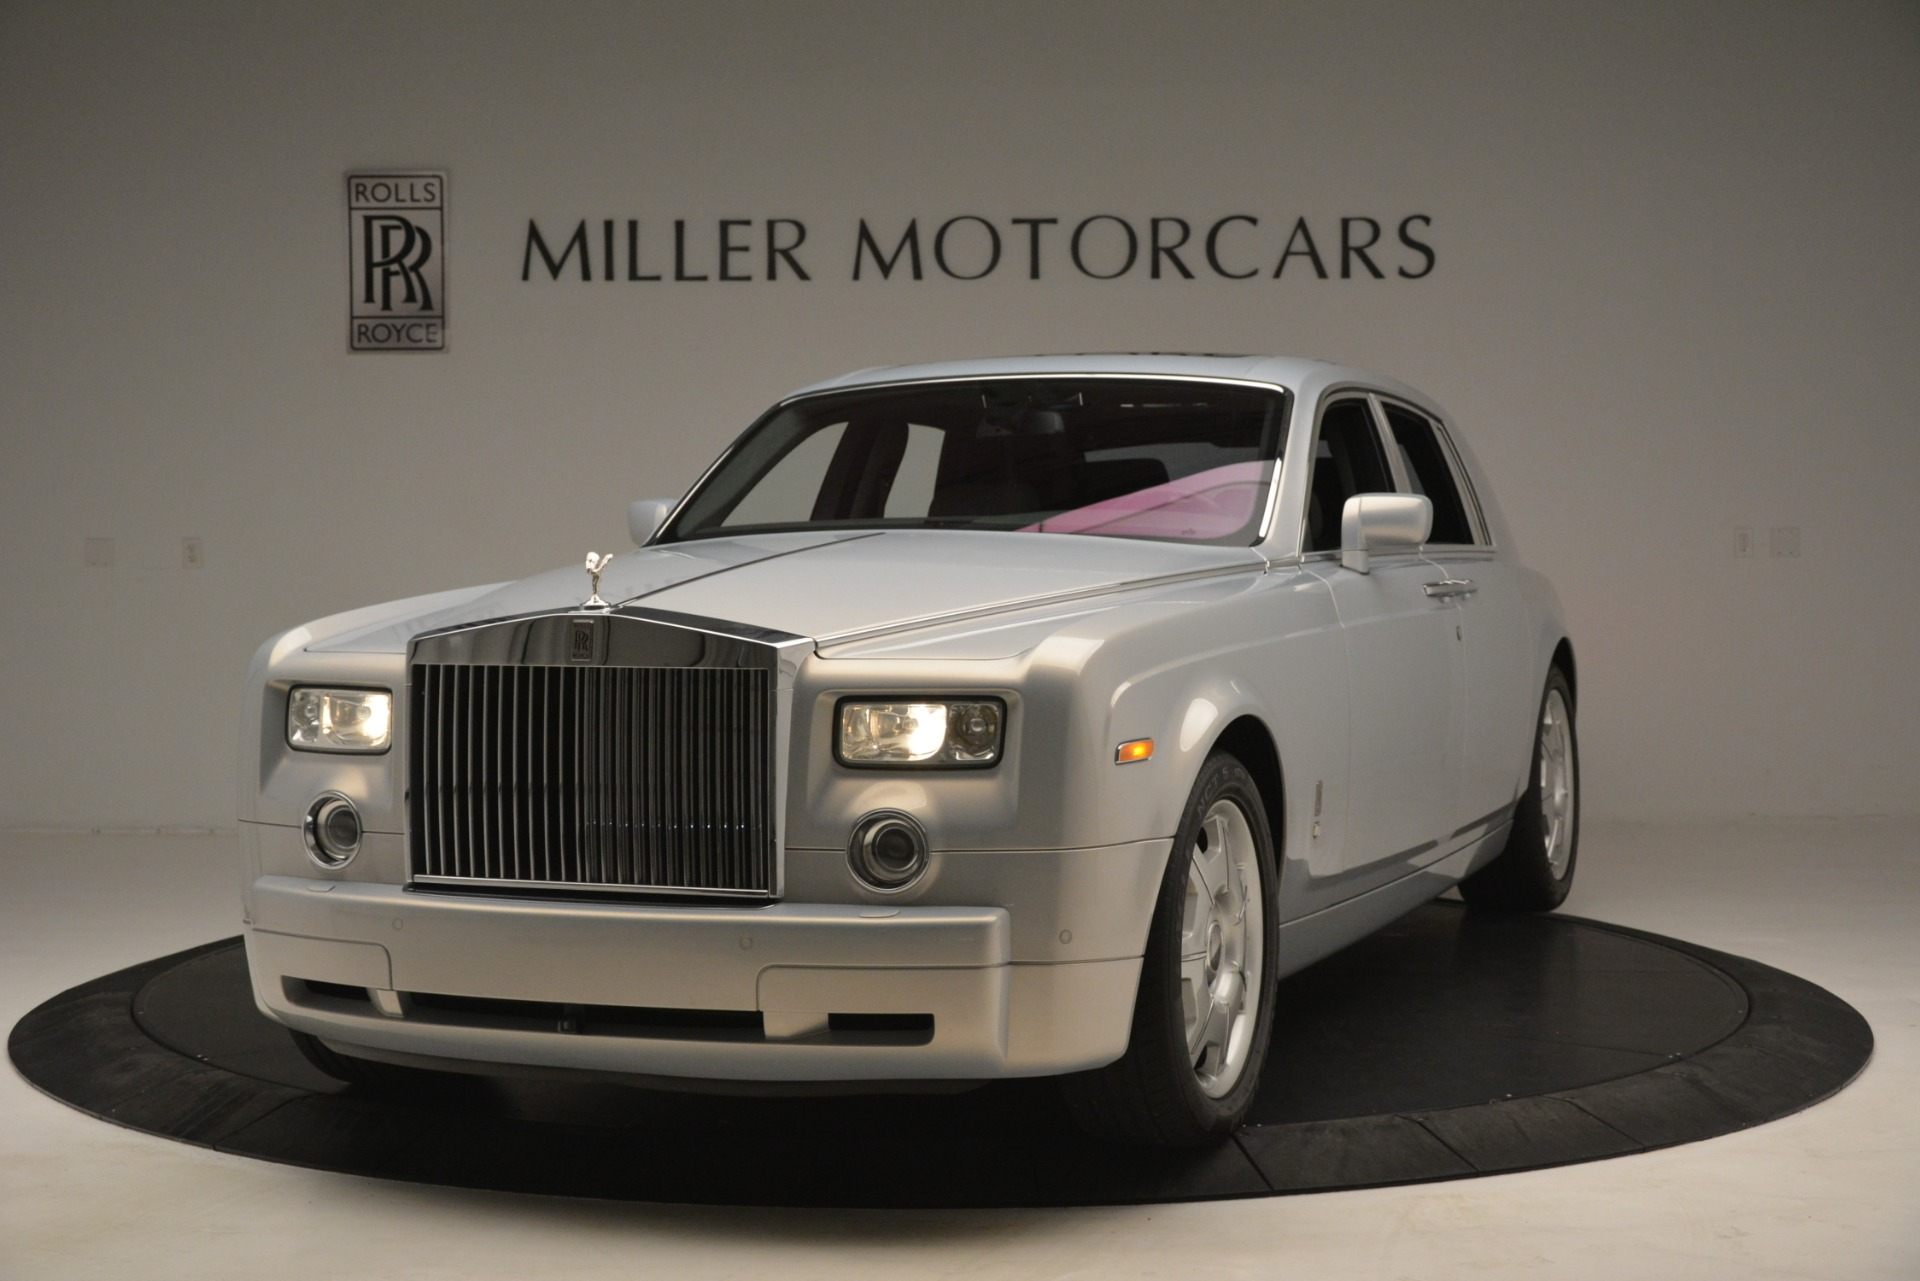 Used 2007 Rolls-Royce Phantom for sale Sold at Maserati of Greenwich in Greenwich CT 06830 1